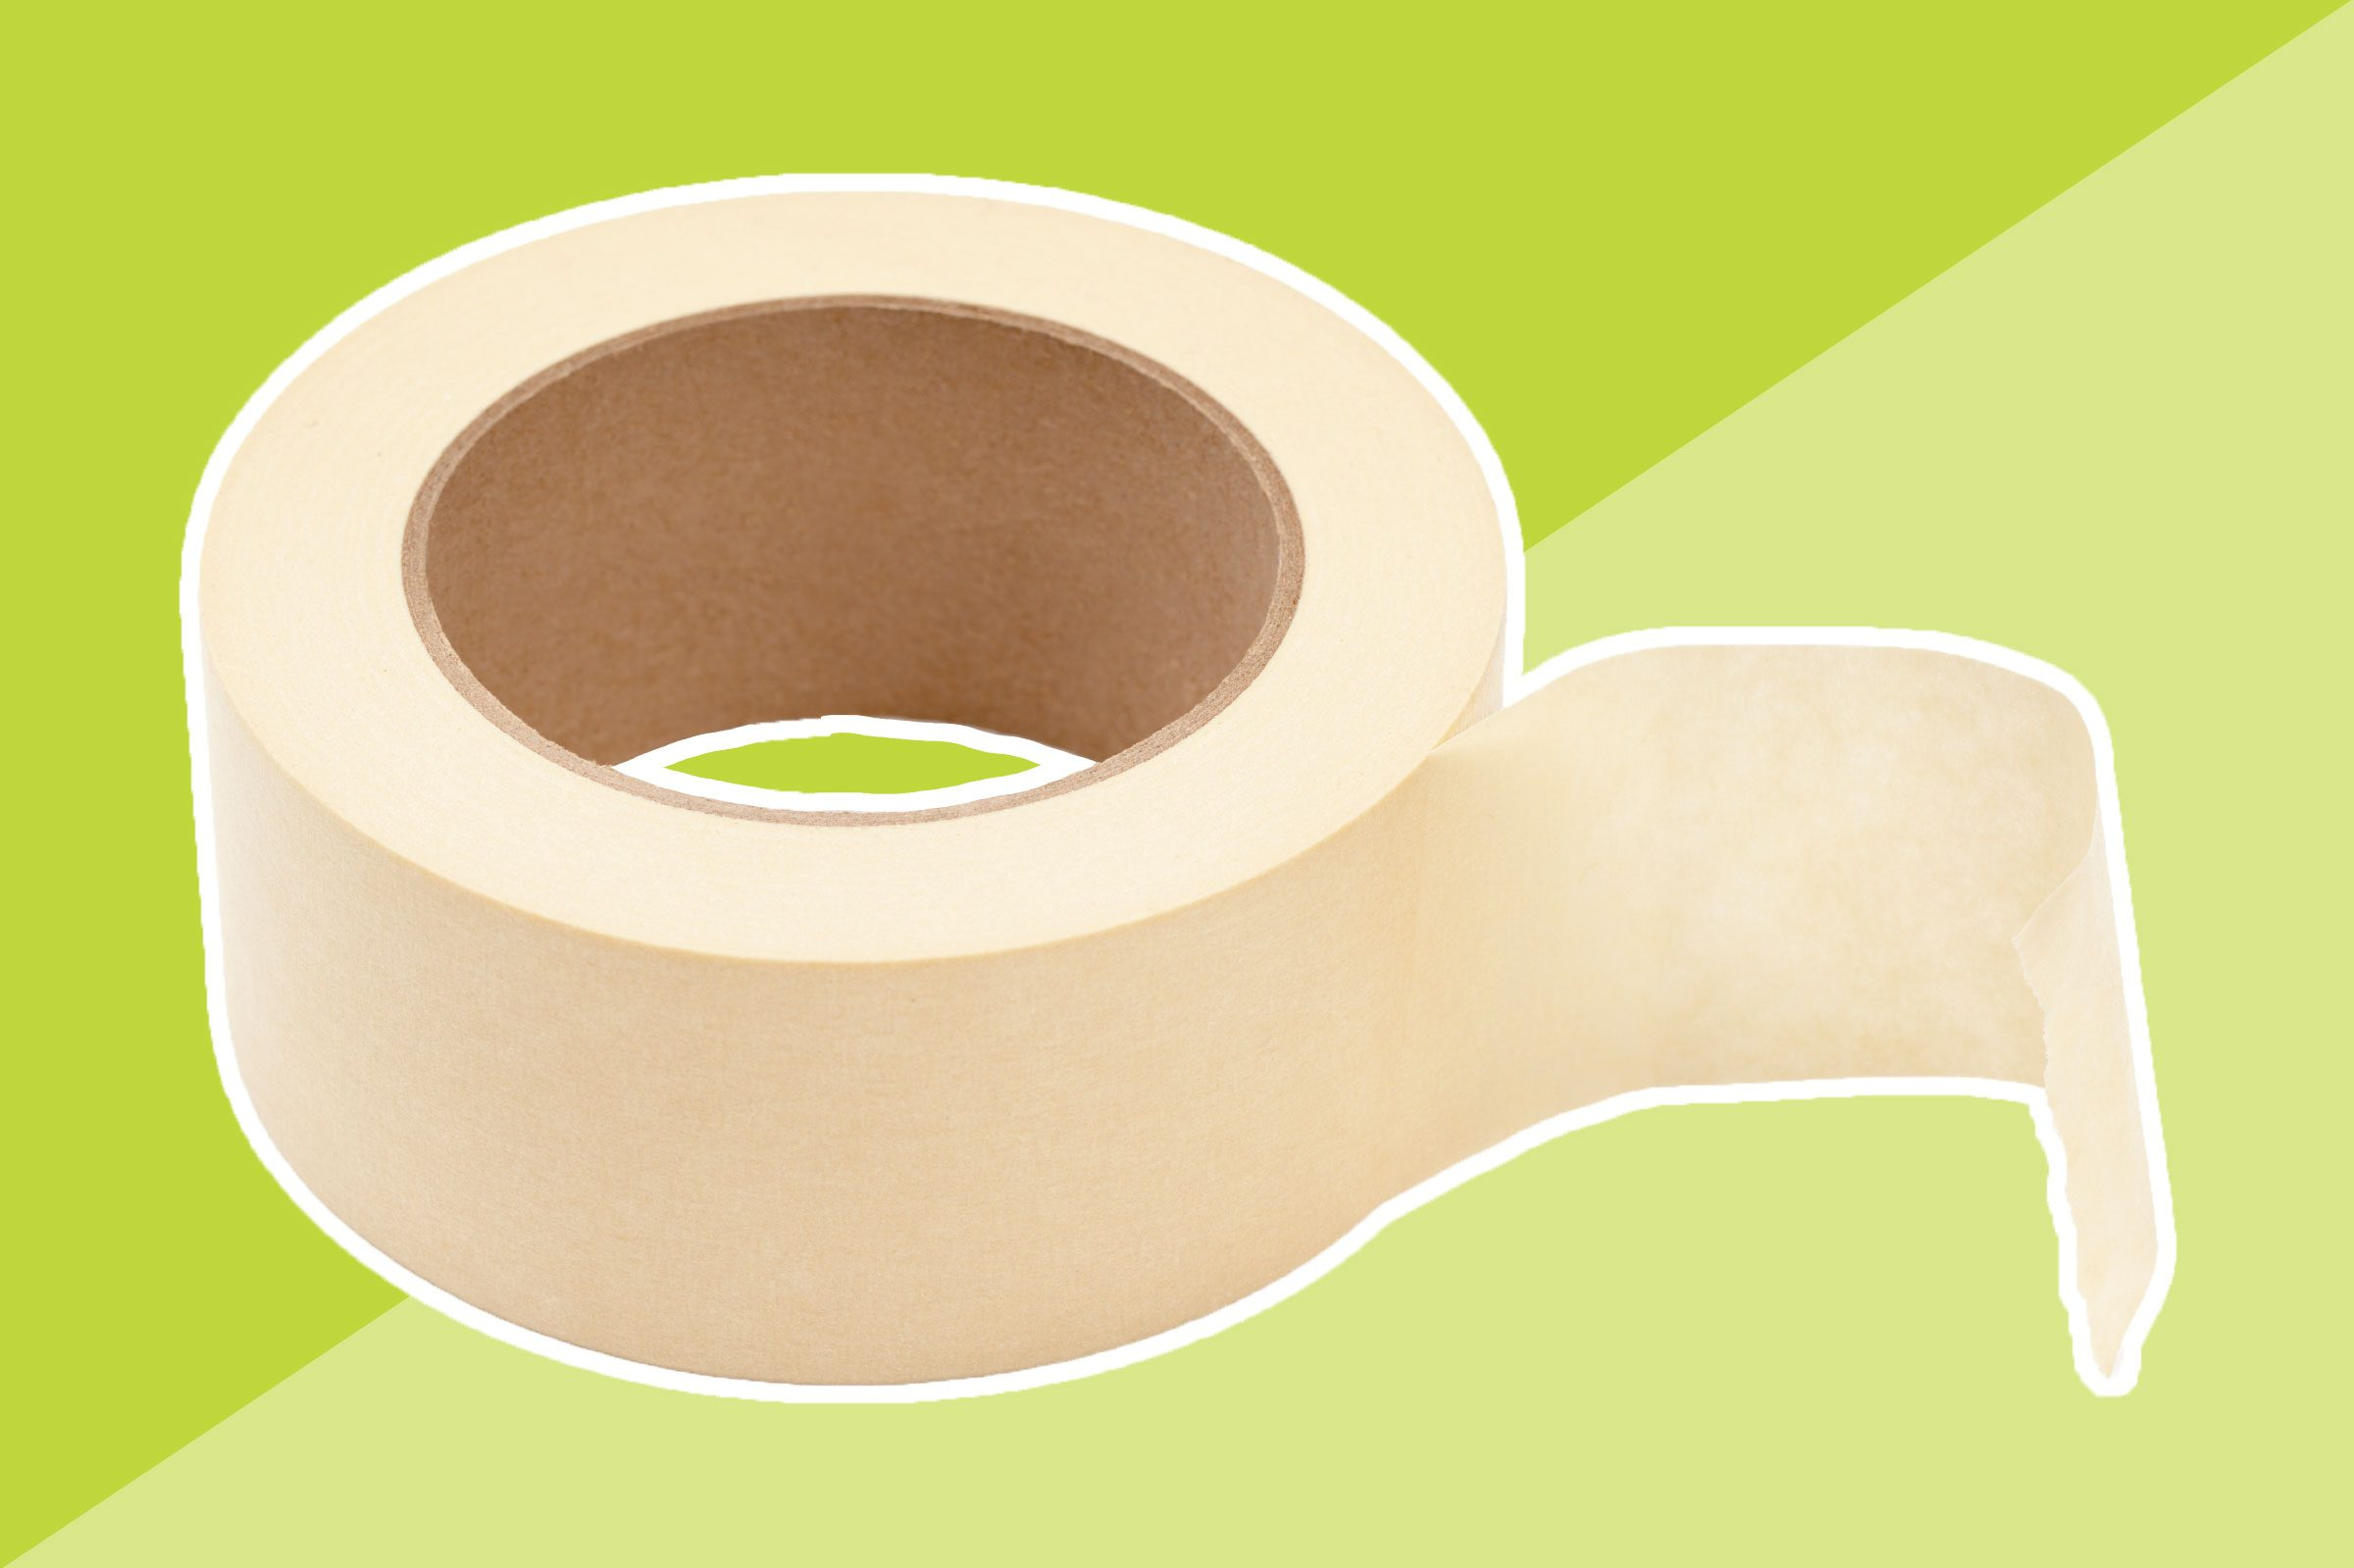 adhesive tape how to get rid of ants  13 simple solutions   reader u0027s digest  rh   rd com